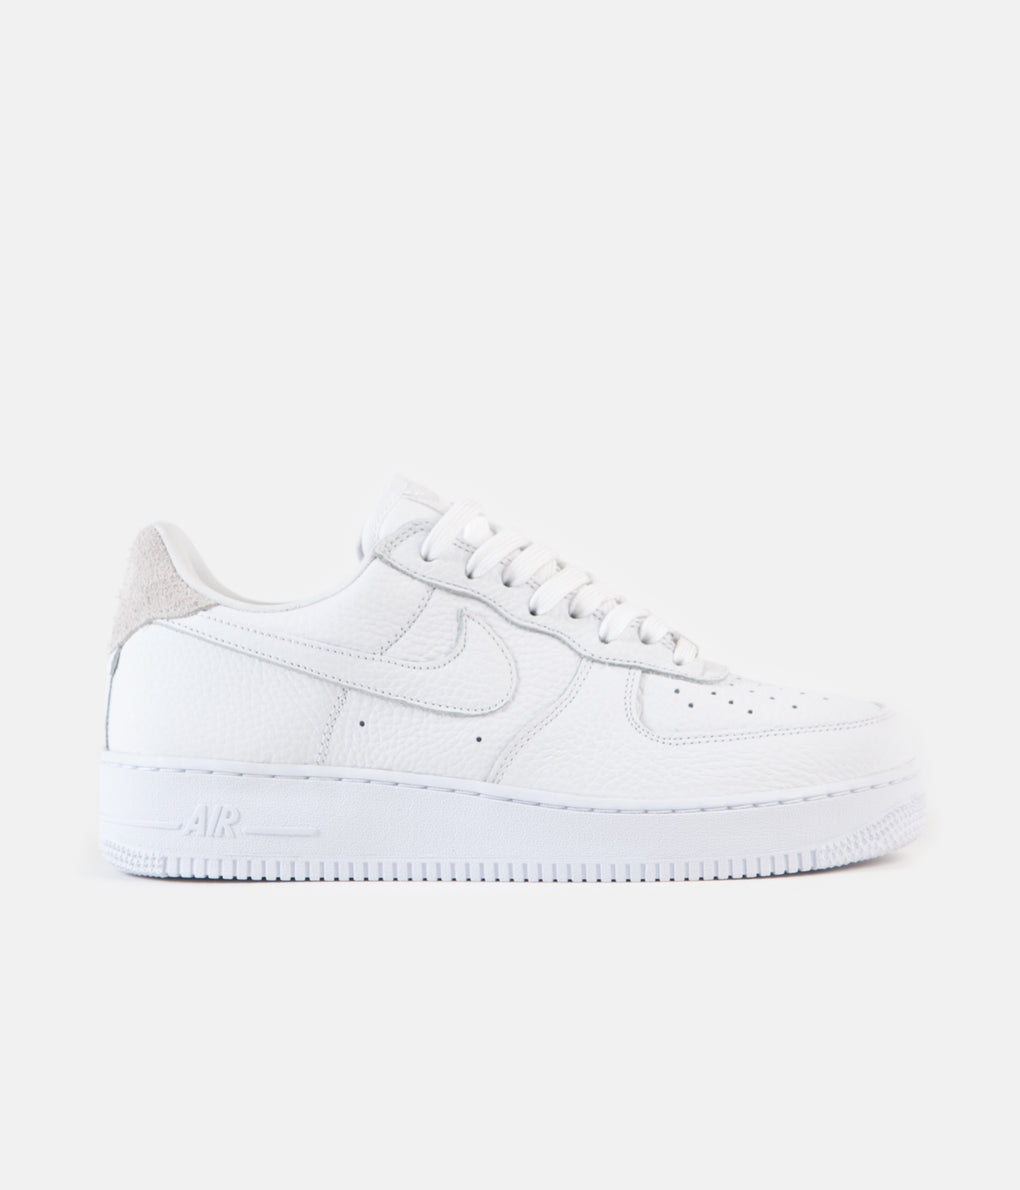 Nike Air Force 1 '07 Craft Shoes - White / White - Summit White - Vast Grey